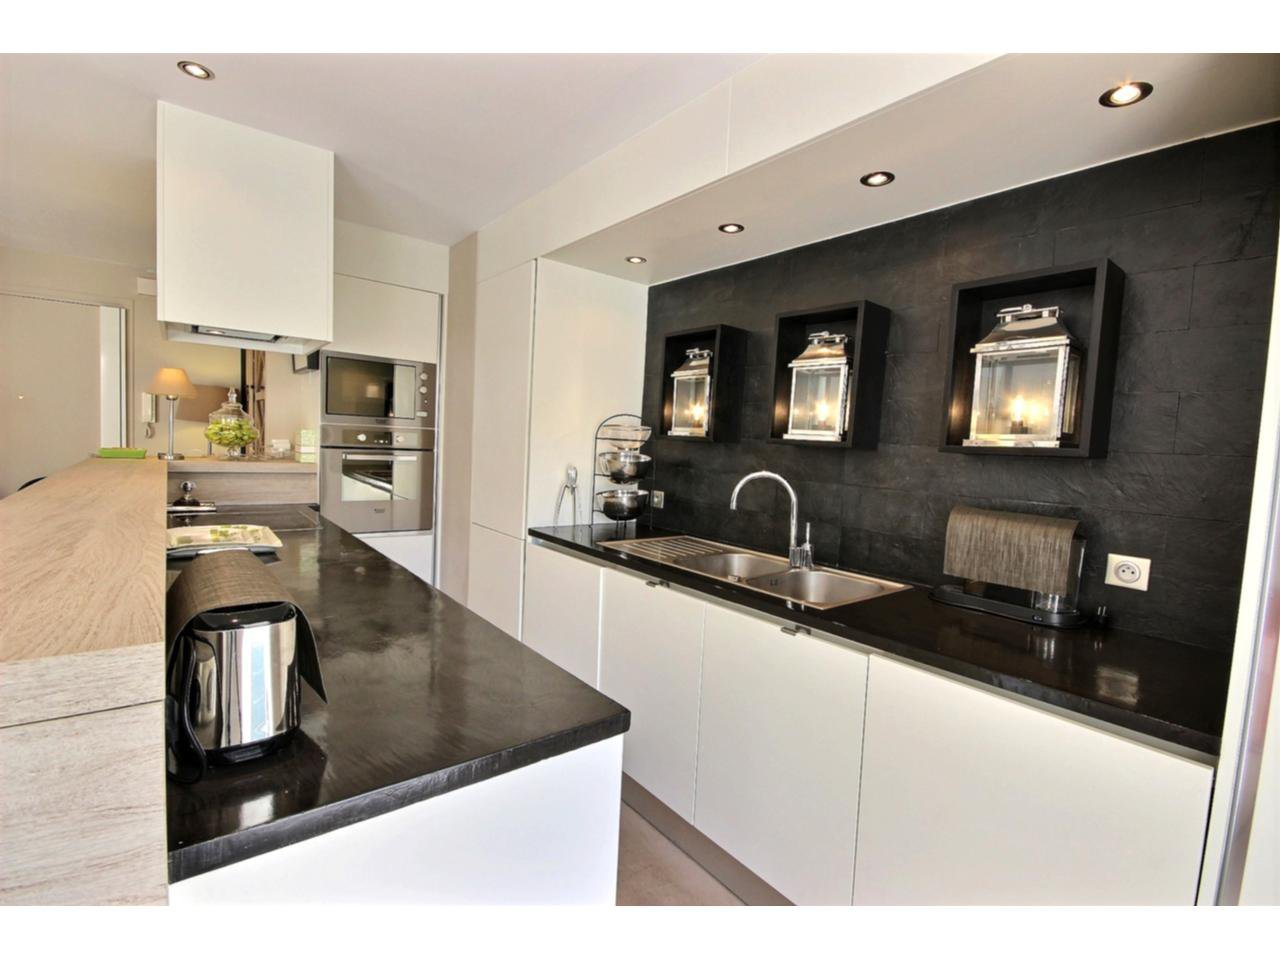 Kitchen Cannes Palm Beach property for sale with sea view